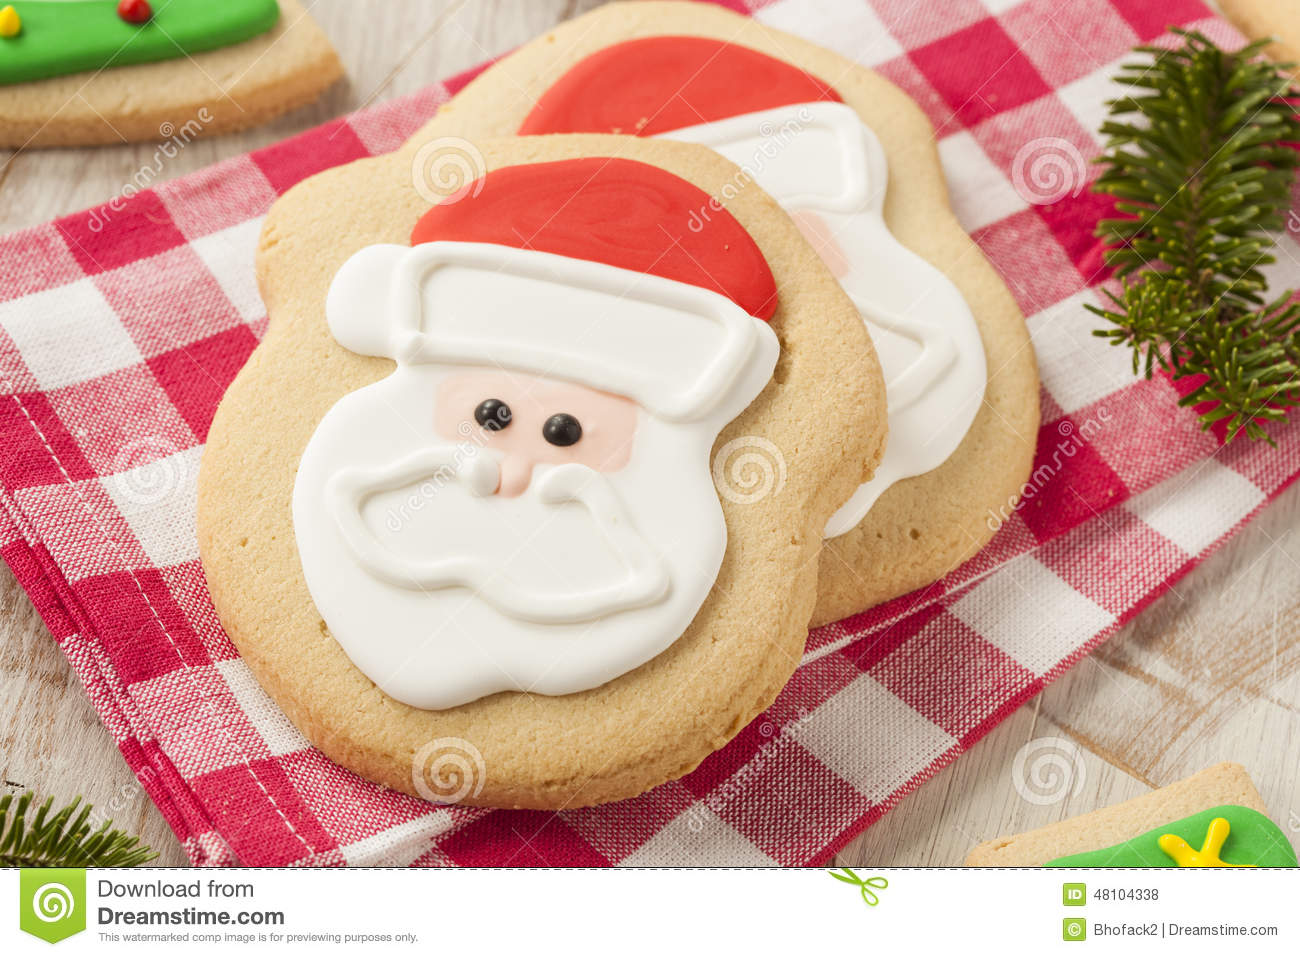 Homemade Christmas Sugar Cookies Stock Photo - Image: 48104338